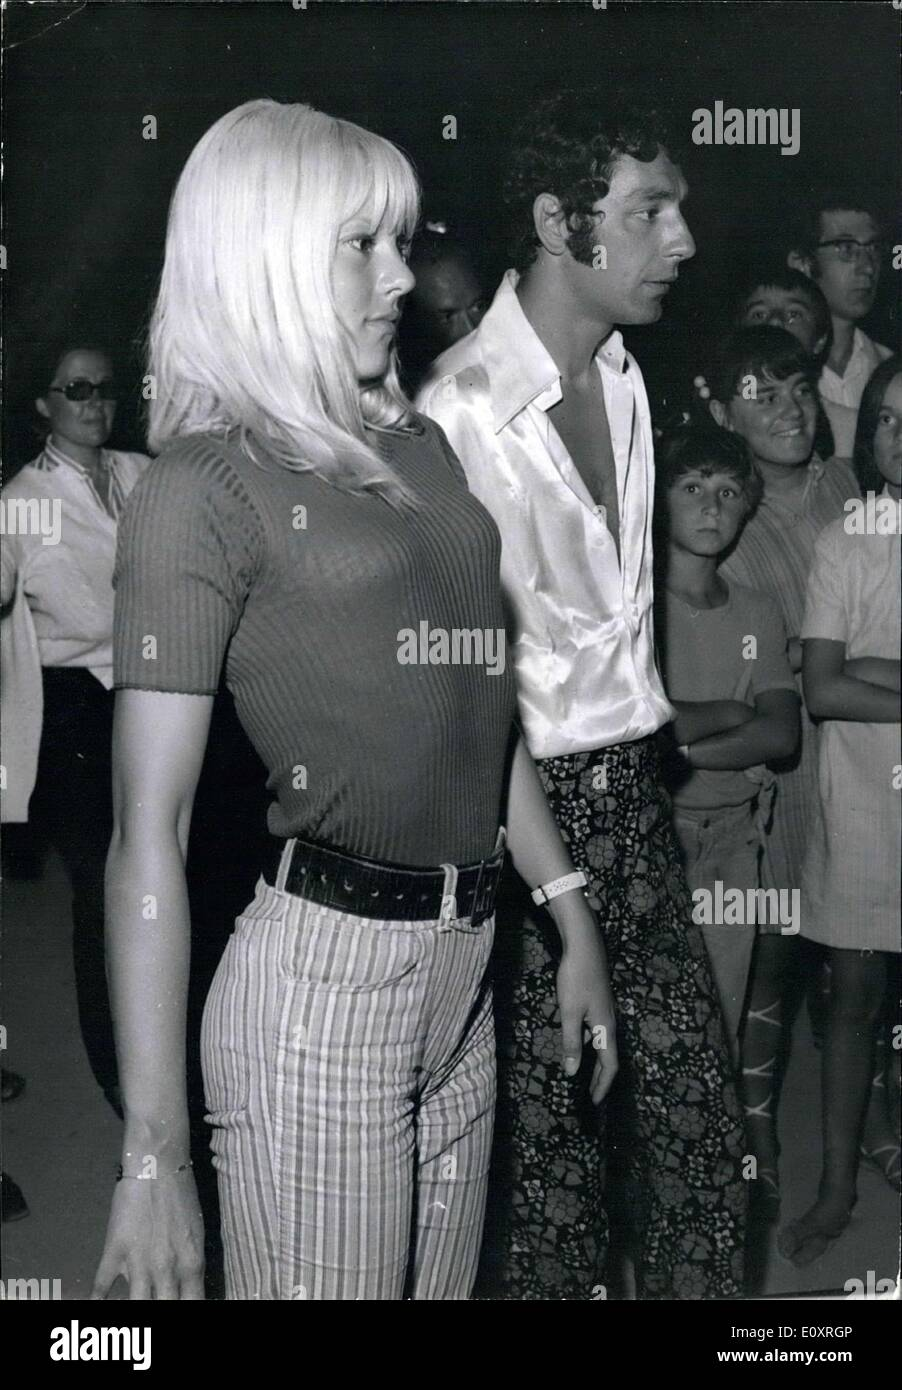 Sylvie Vartan High Resolution Stock Photography And Images Alamy